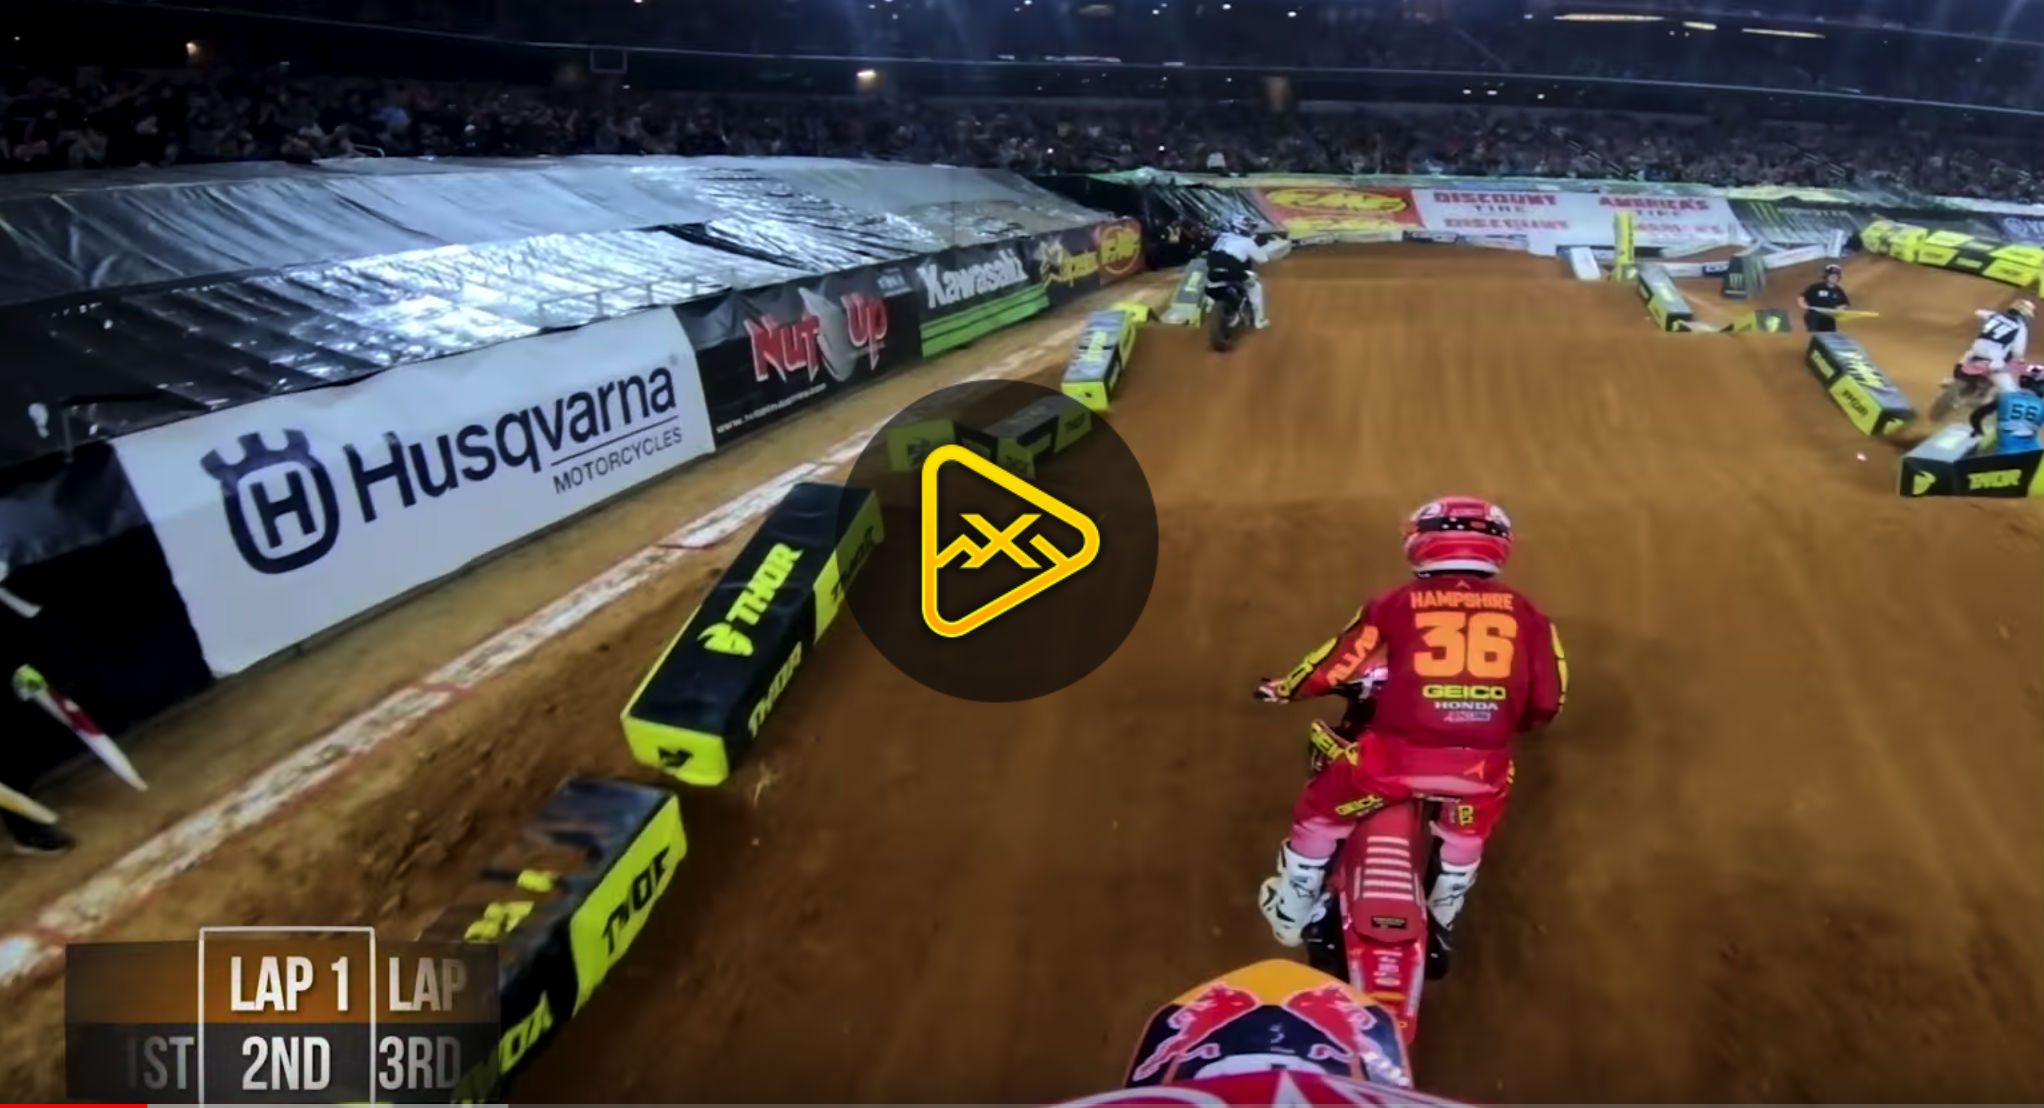 GoPro – Sean Cantrell at 2018 Arlington SX